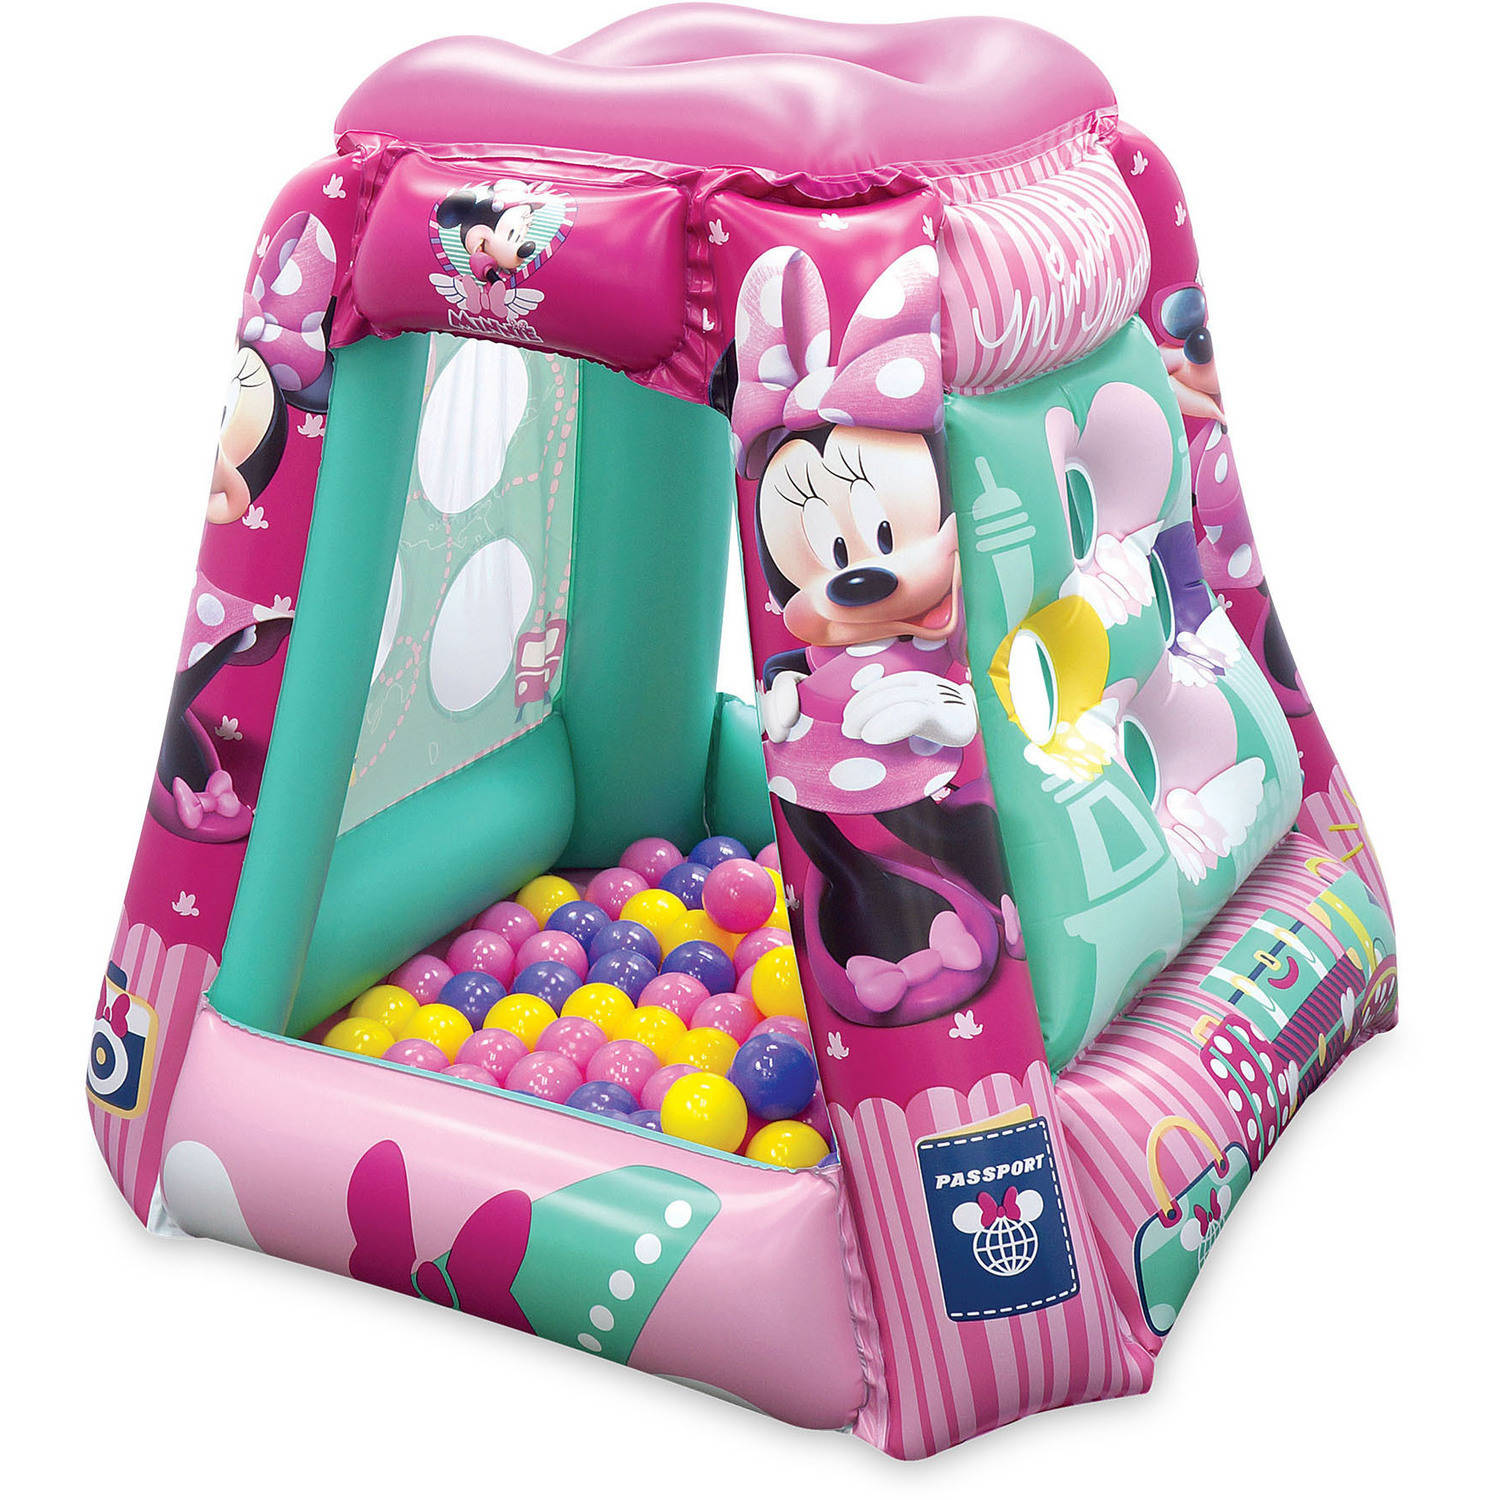 Inflatable playland with 20 soft flex balls asst